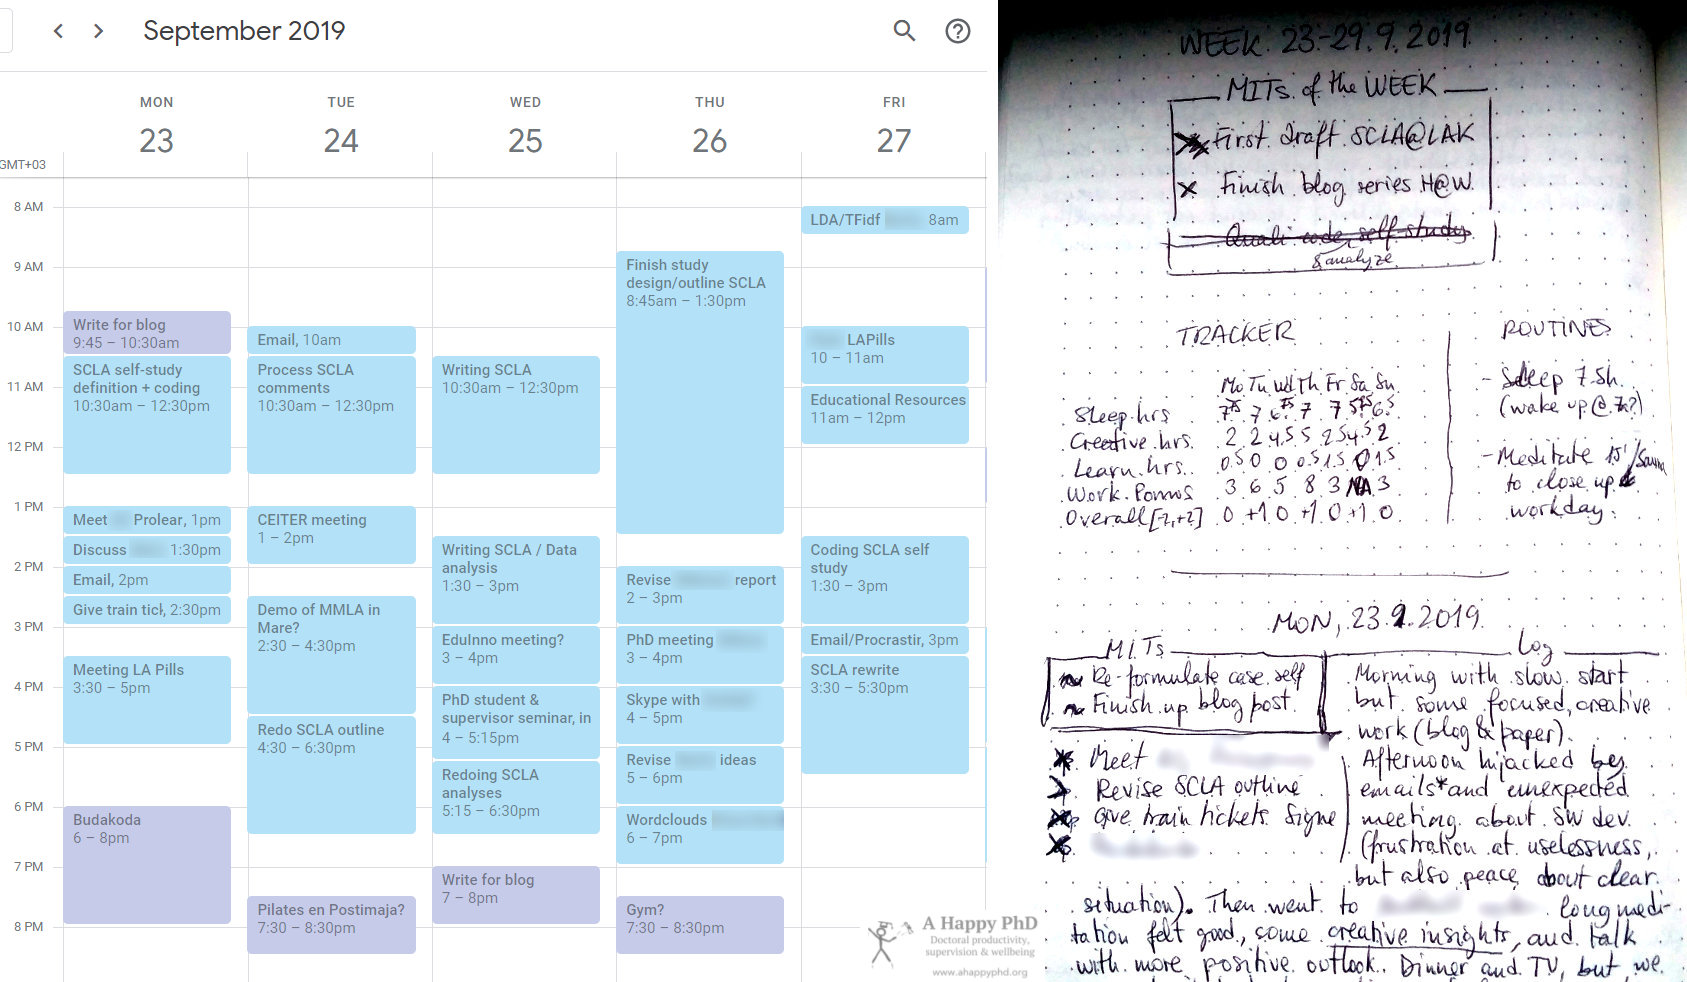 Examples of calendar and paper notes/to-dos, for a week that is ending